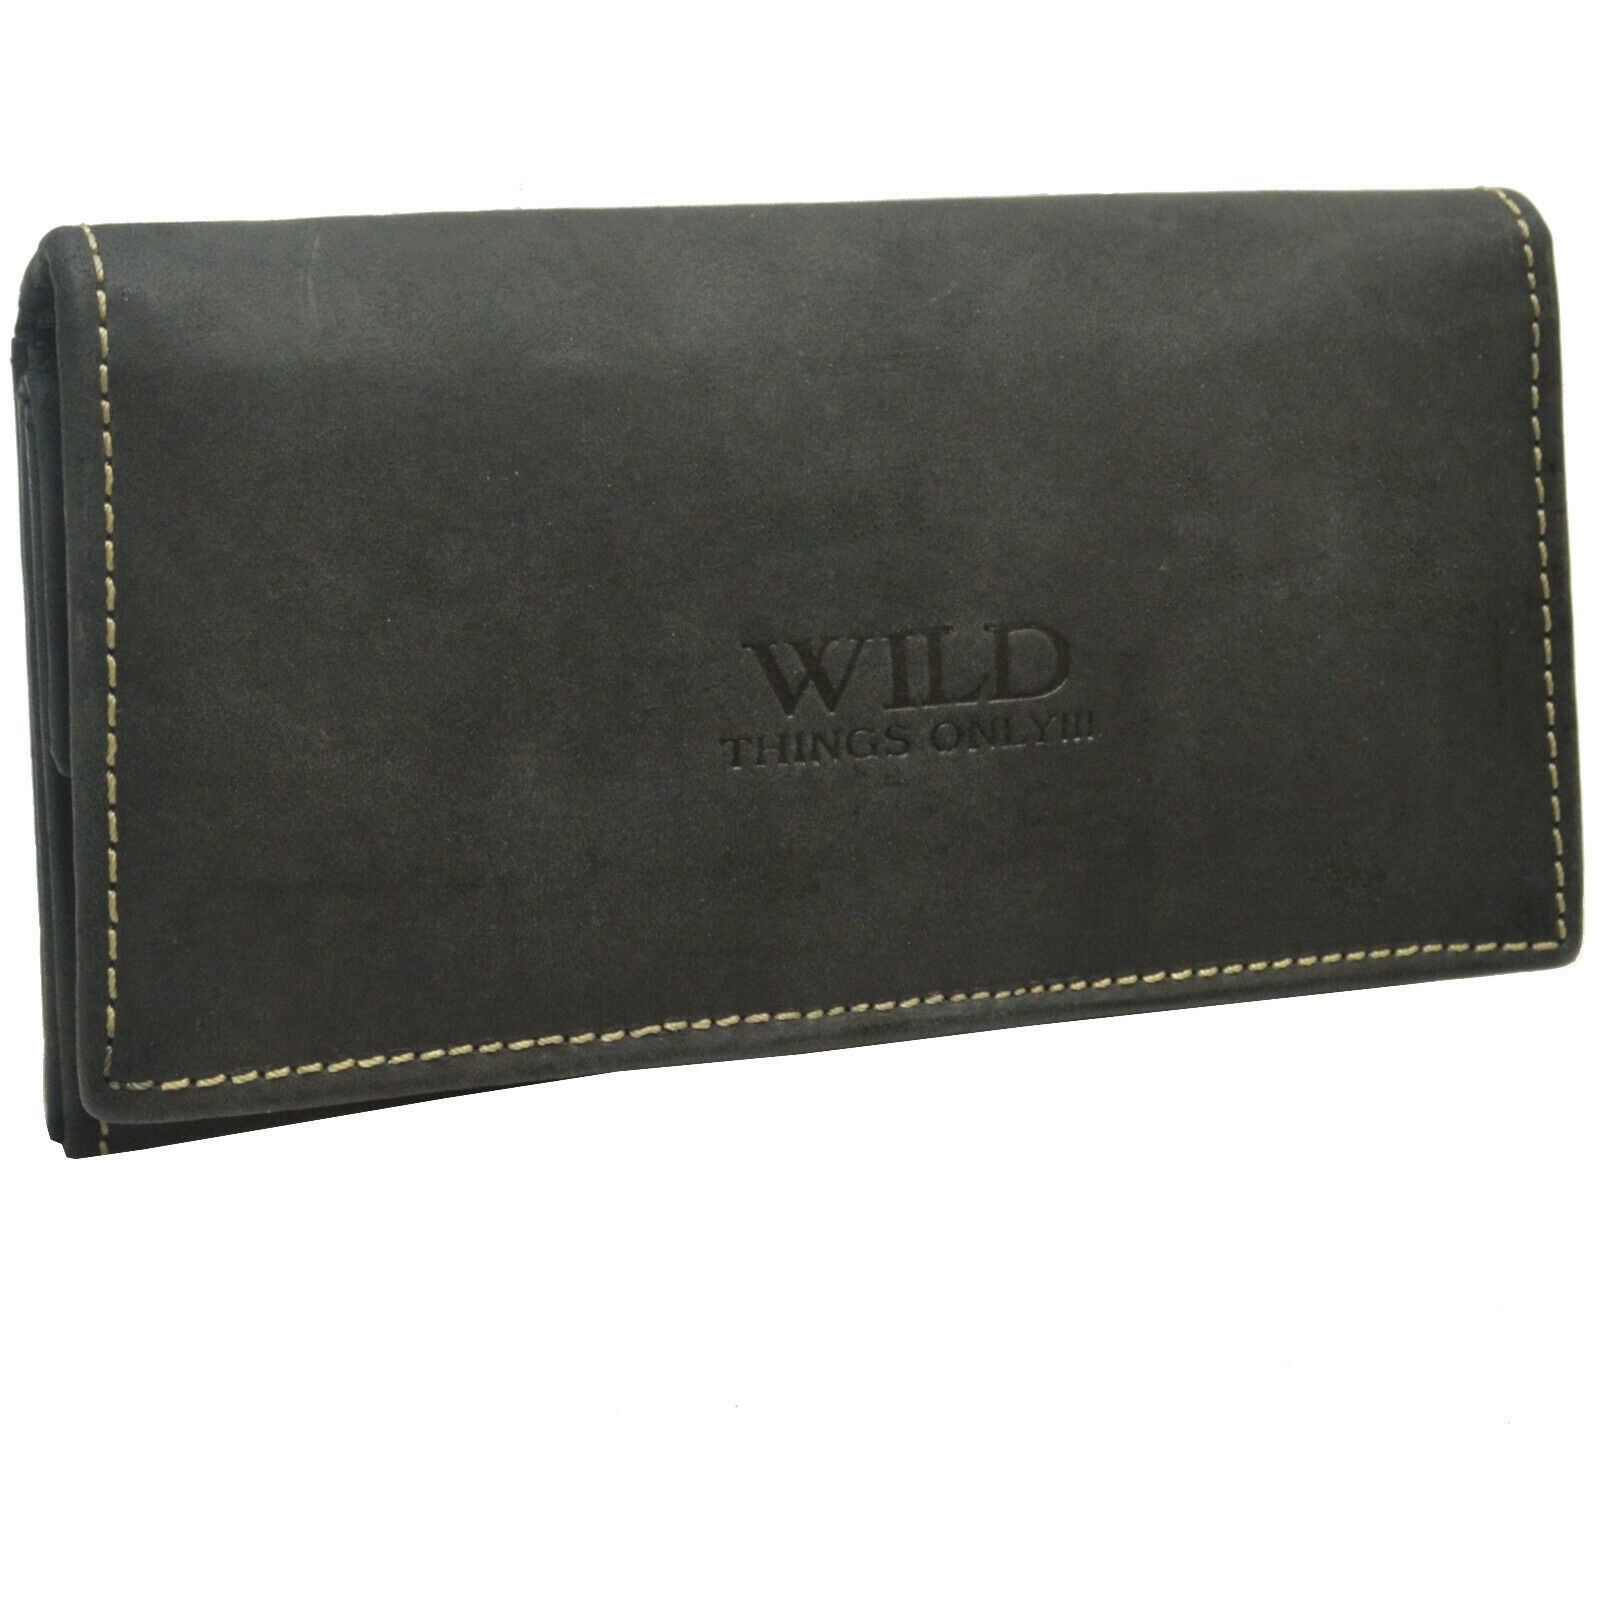 Flevado Womens Wallet Purse Black much storage space Wild things only!